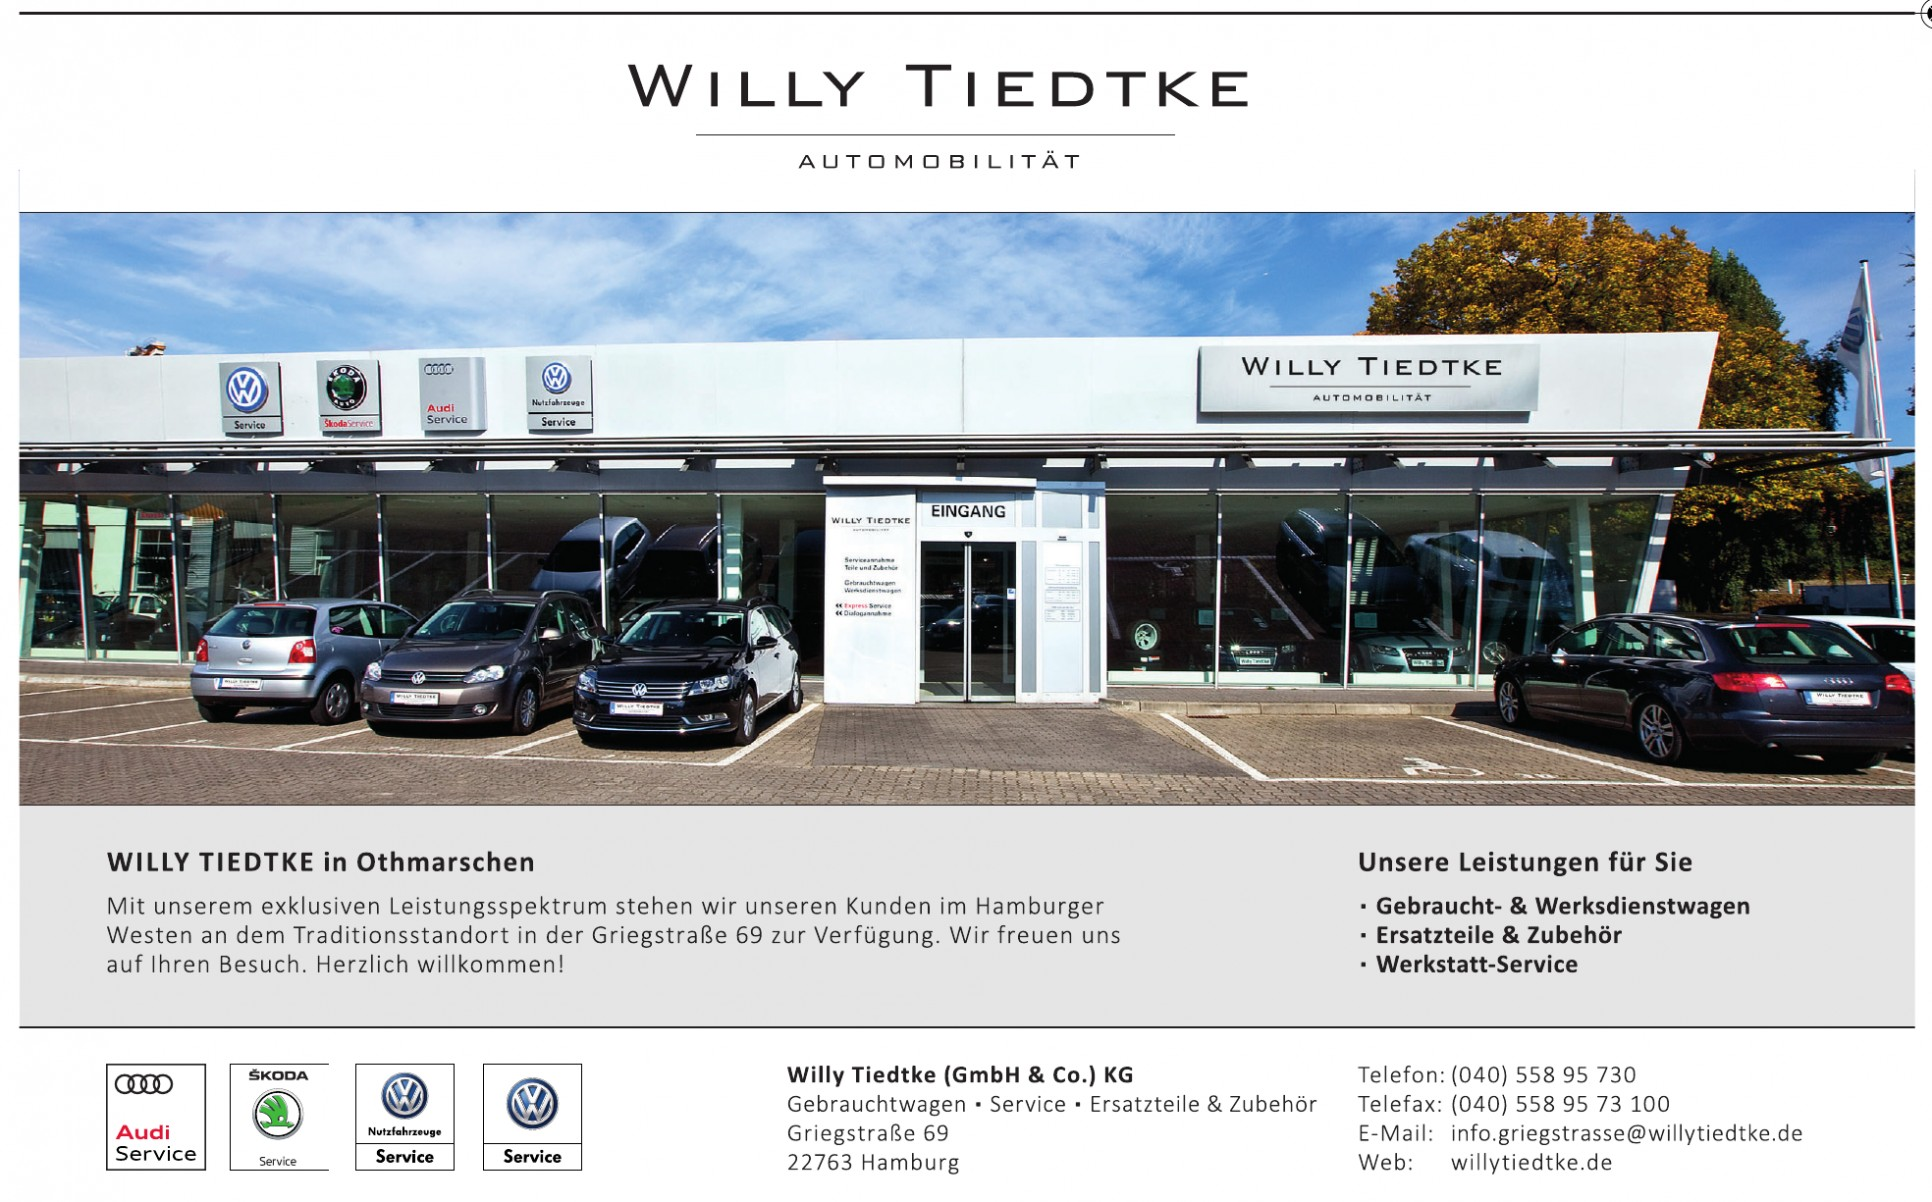 Willy Tiedtke (GmbH & Co.) KG